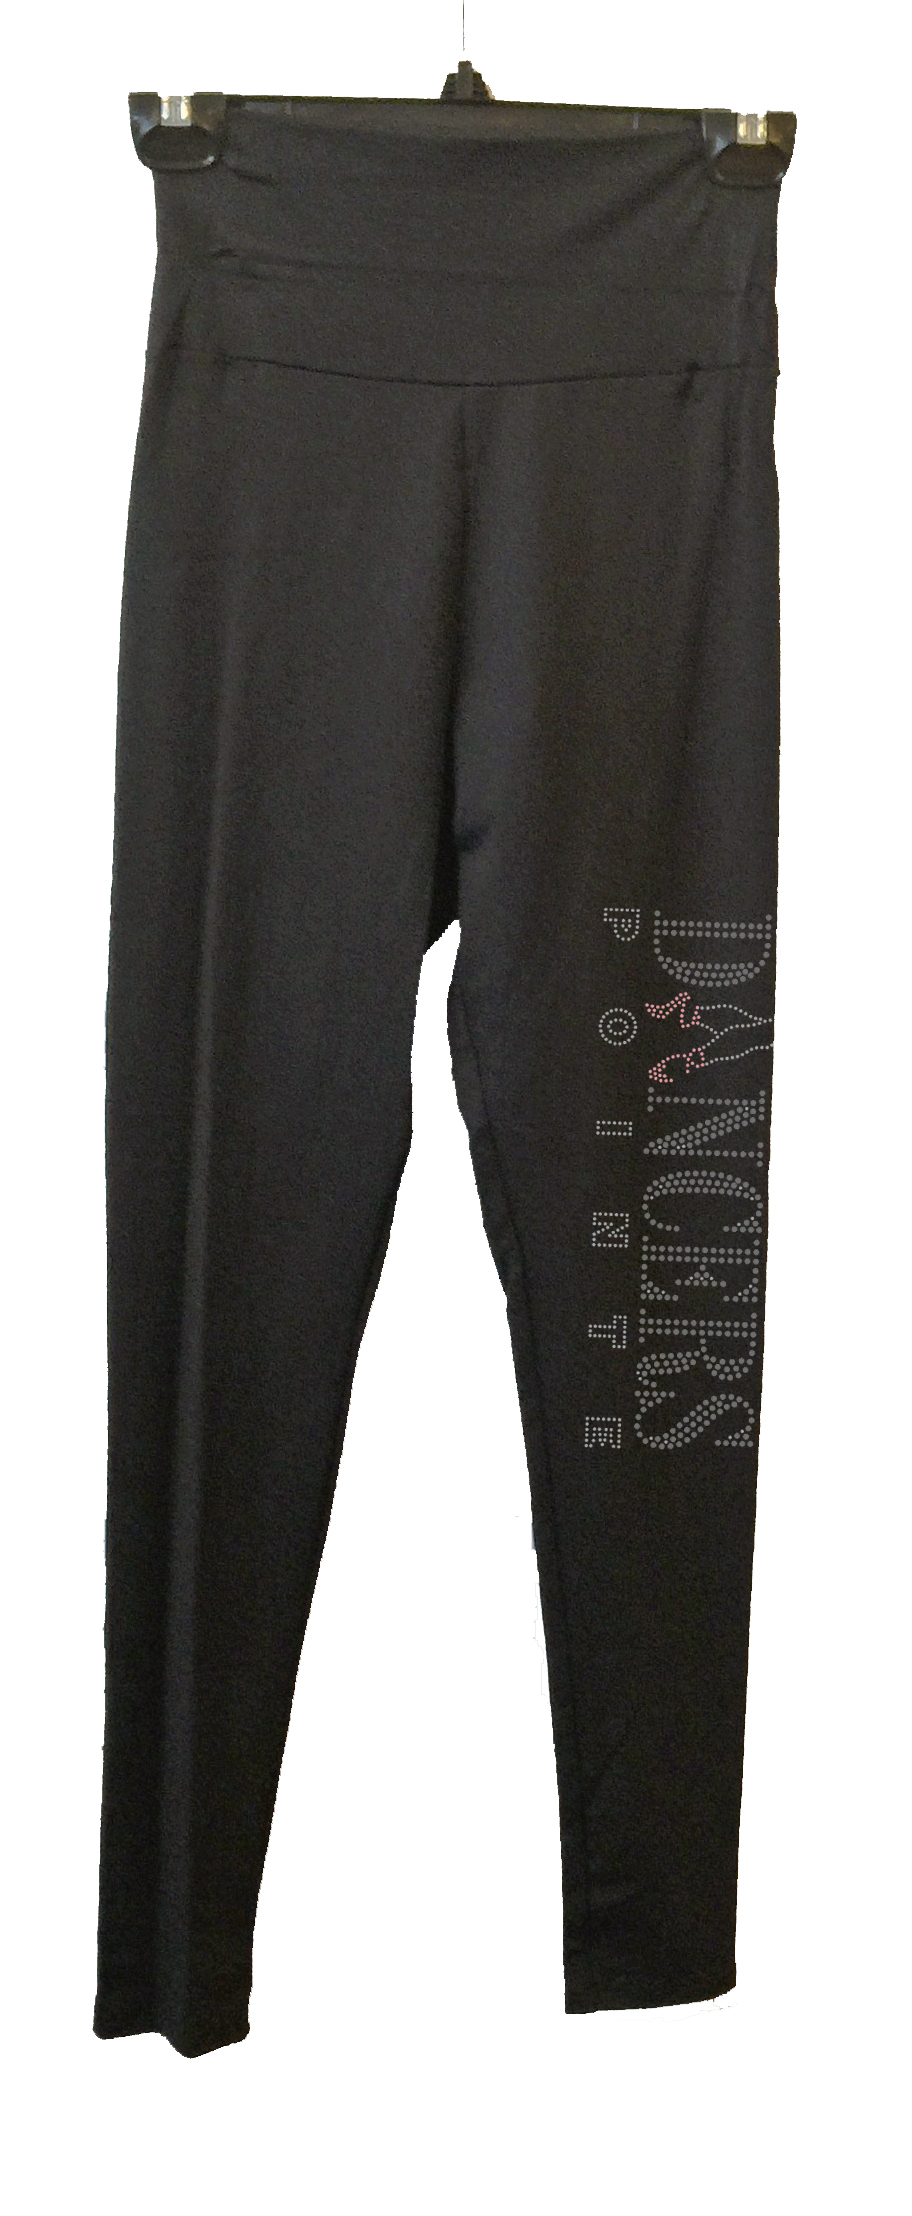 DP HIGH LEGGINGS.jpg